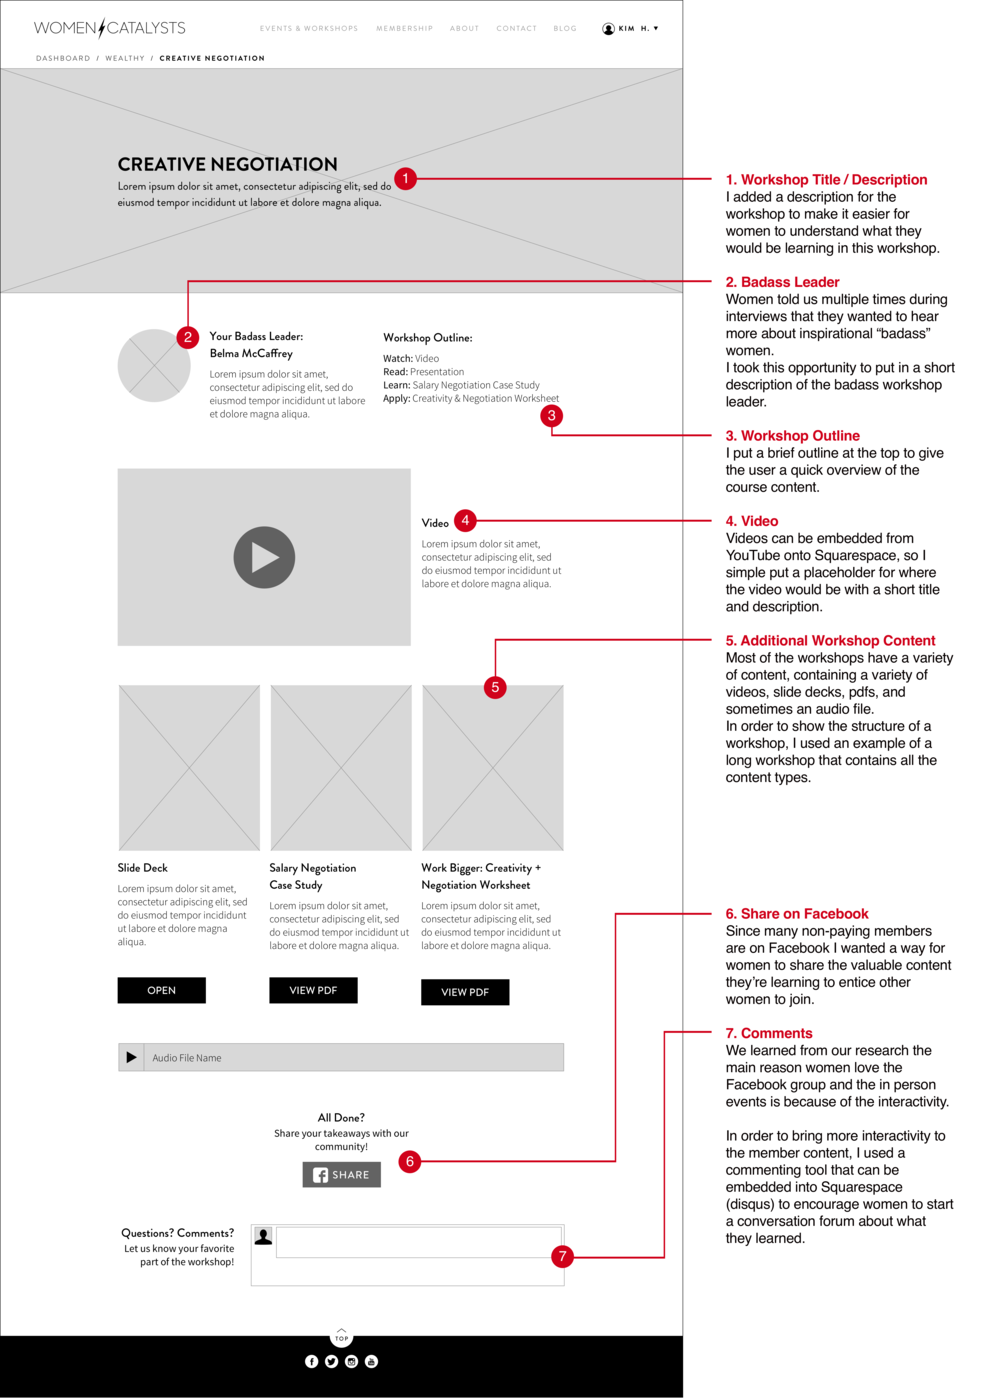 View workshop:The challenge for viewing a workshop was figuring out how to layout workshop material inside a Squarespace template.